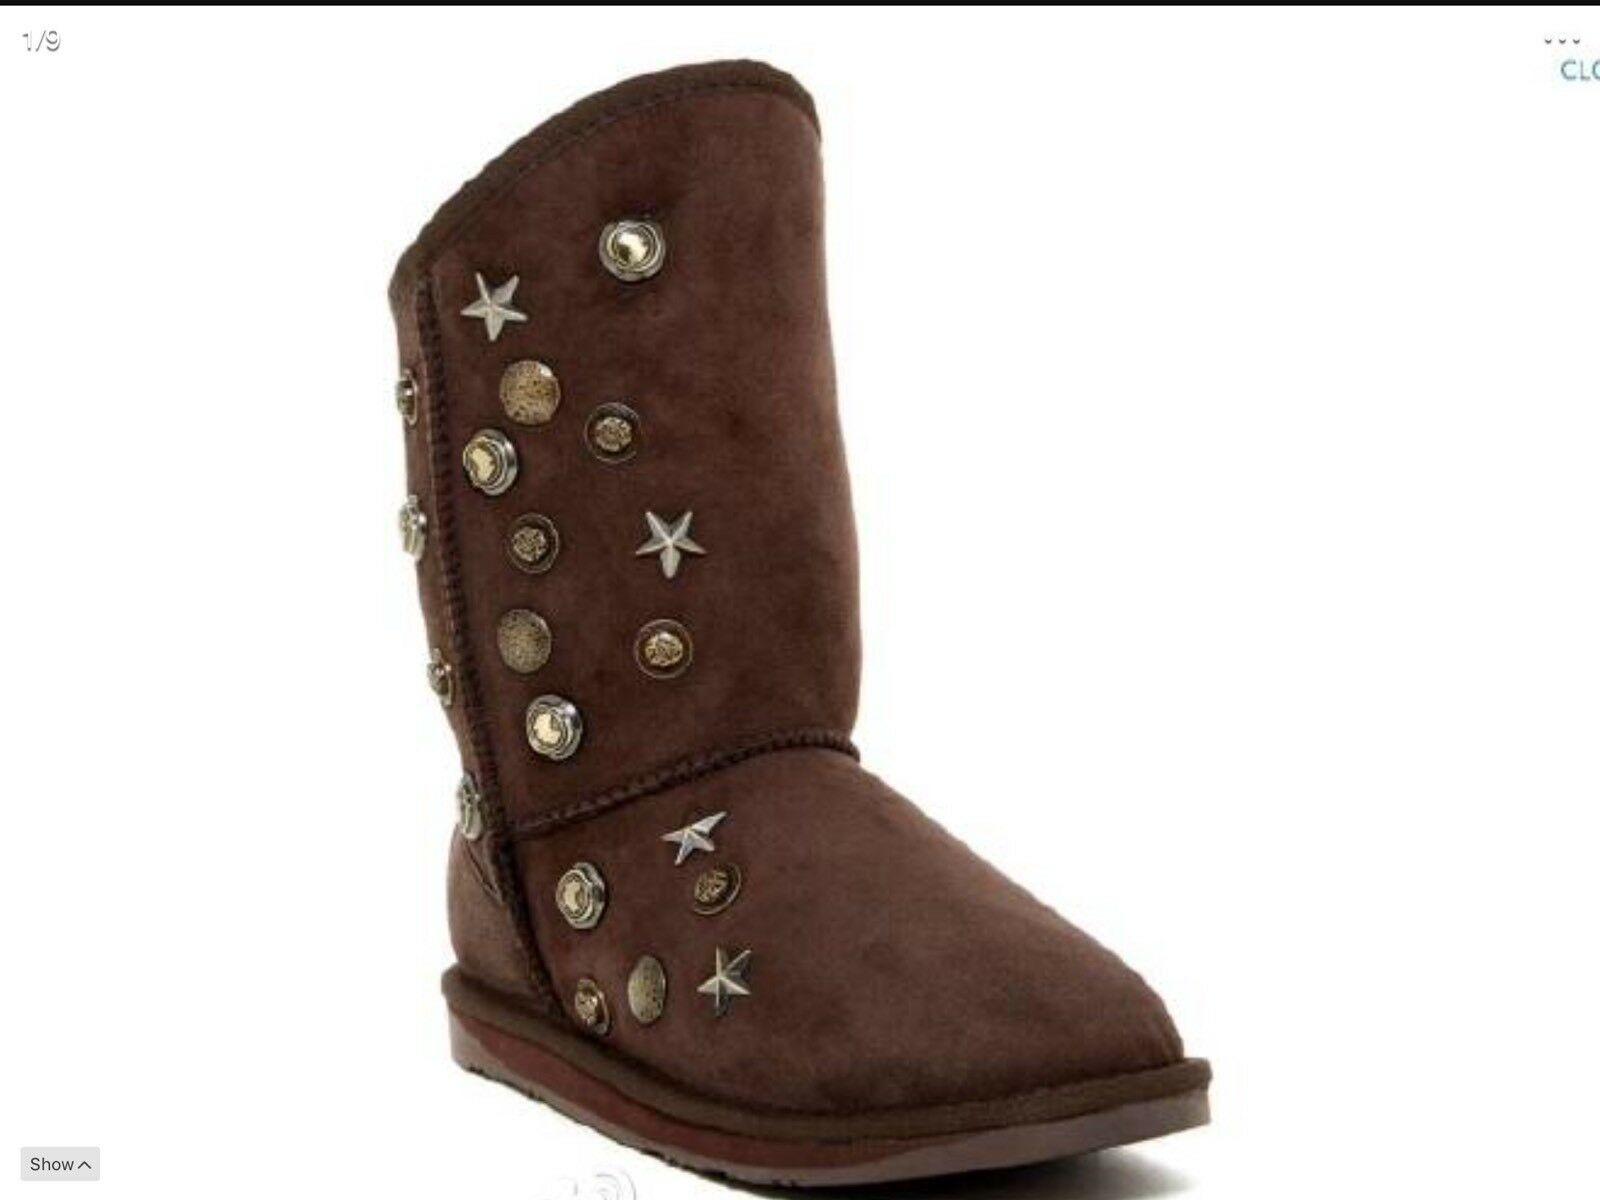 prendi l'ultimo Australia Australia Australia Luxe Collective Angel Stud Sheepskin stivali in Beva MSRP 425 New In Box  basso prezzo del 40%